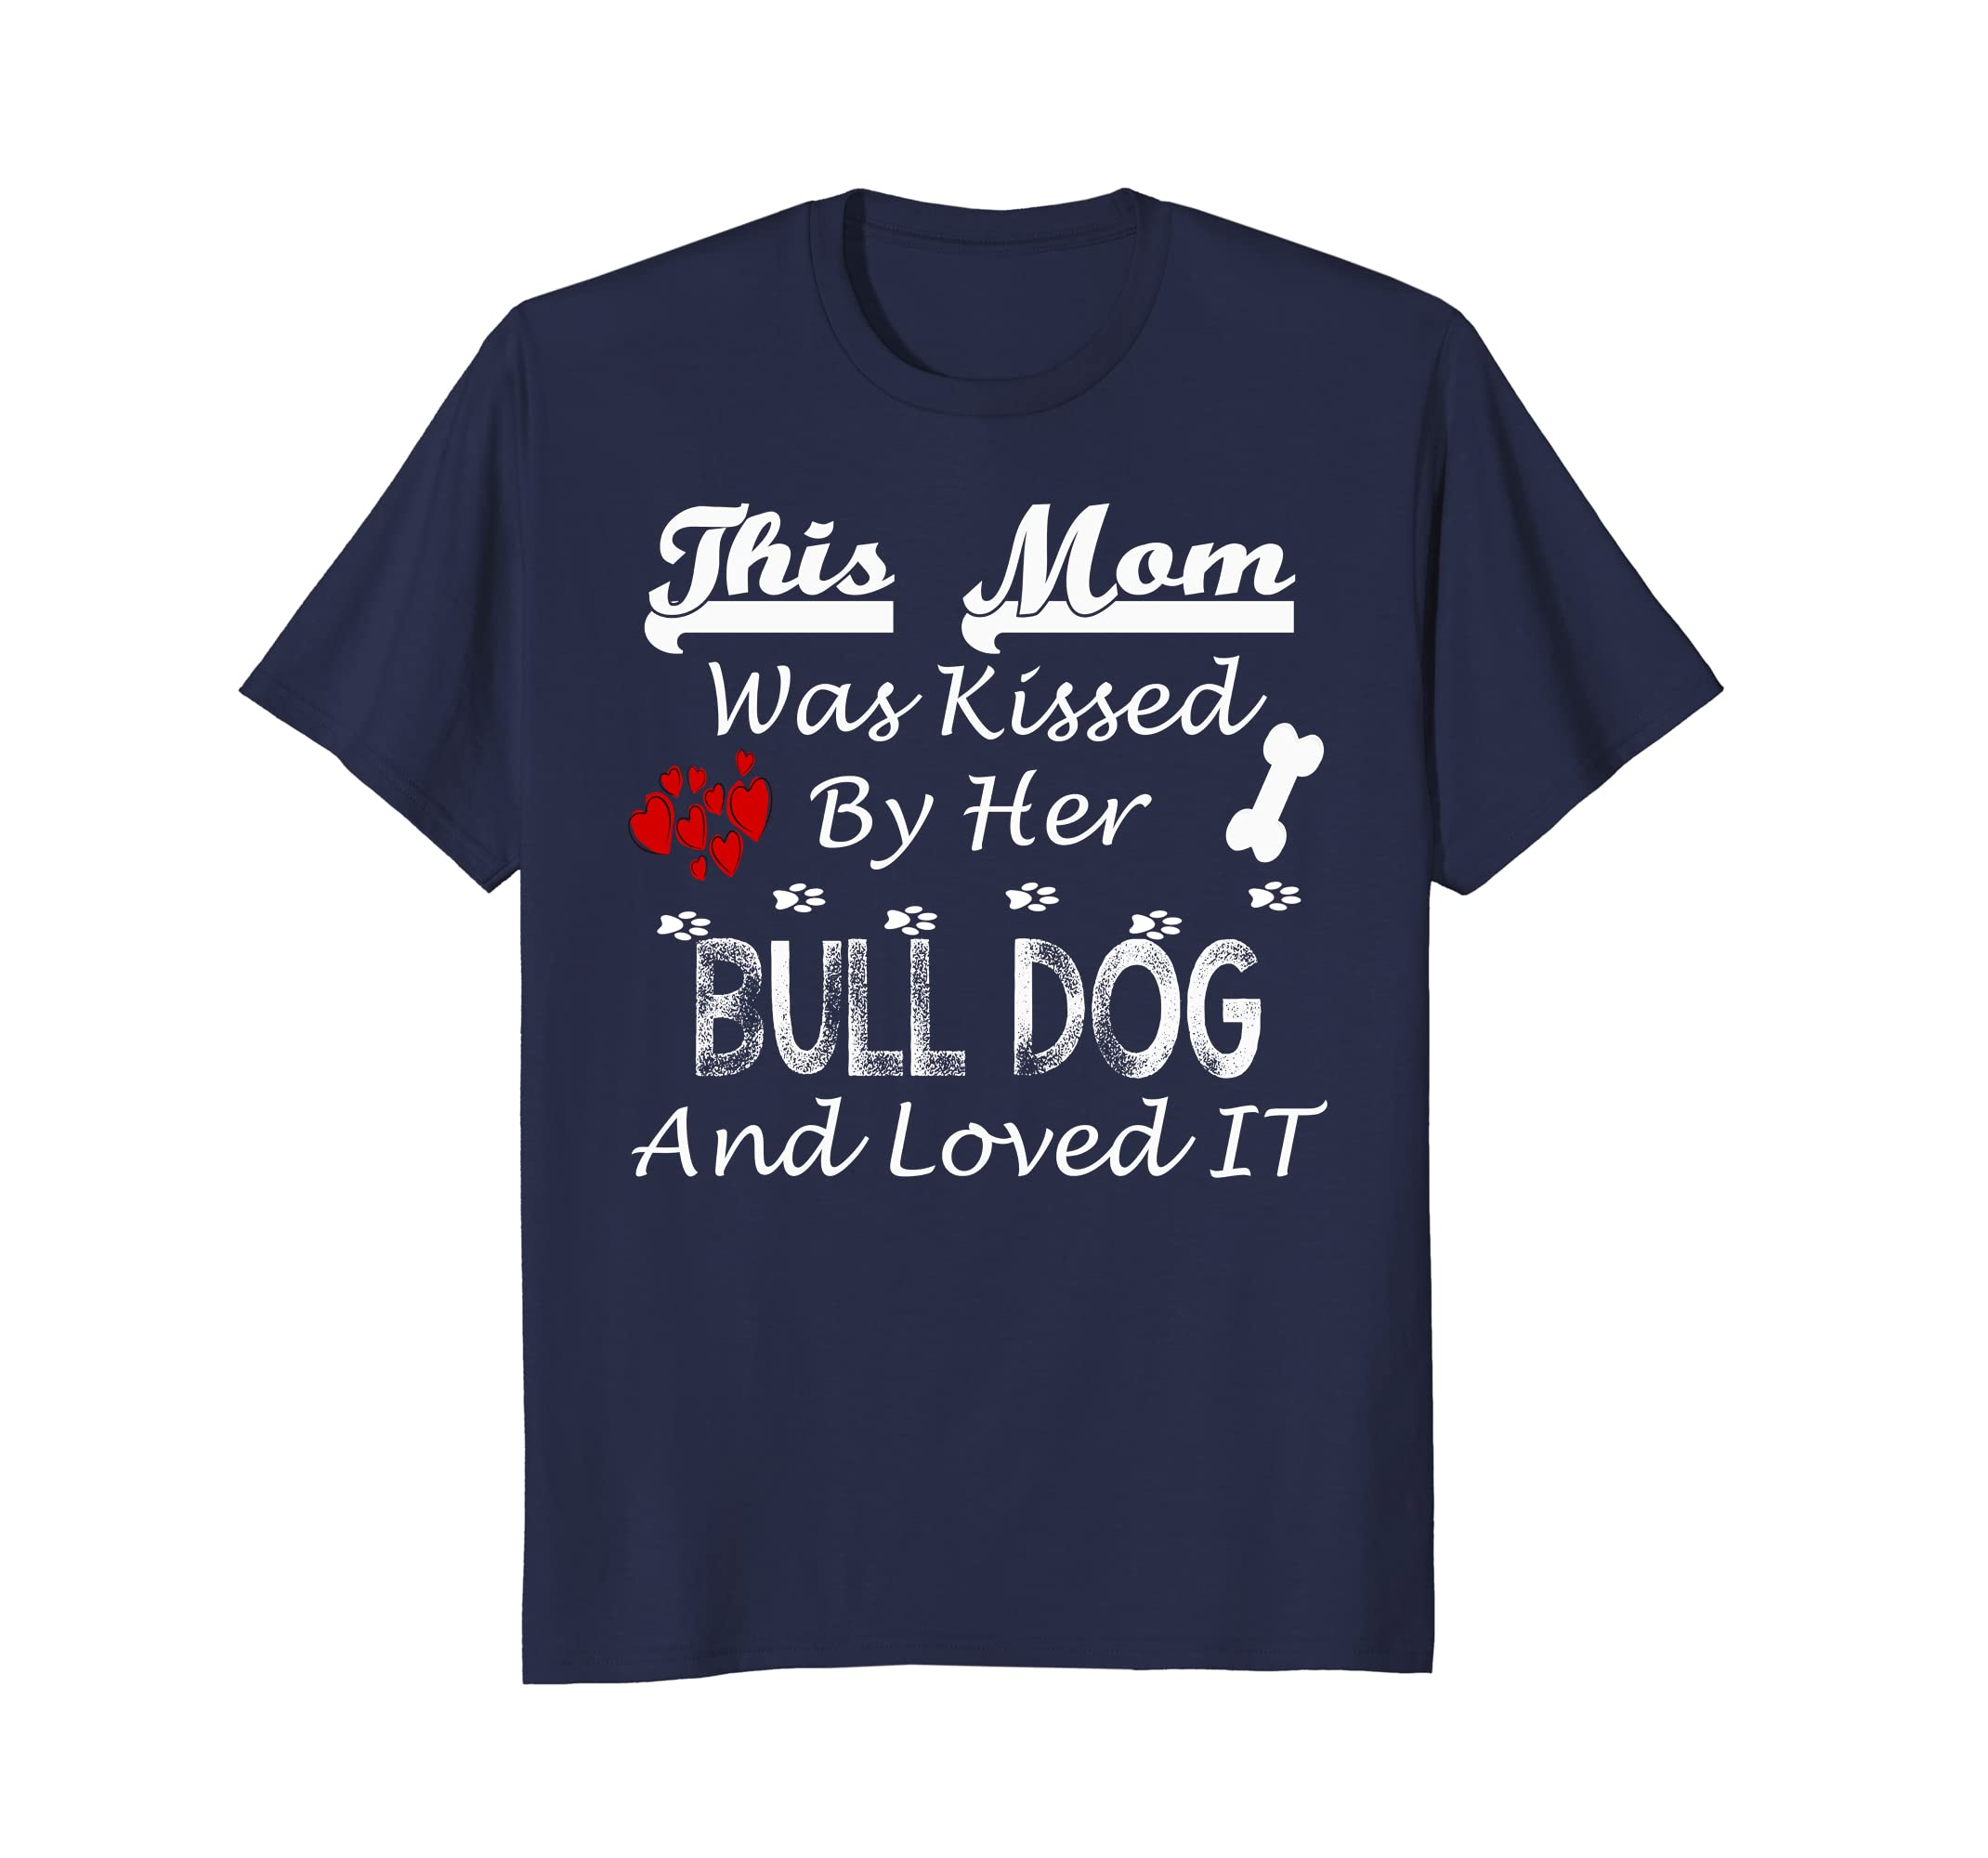 Bulldog Dog Shirt This Mom Kissed By Bulldog Loved It Funny-AZP